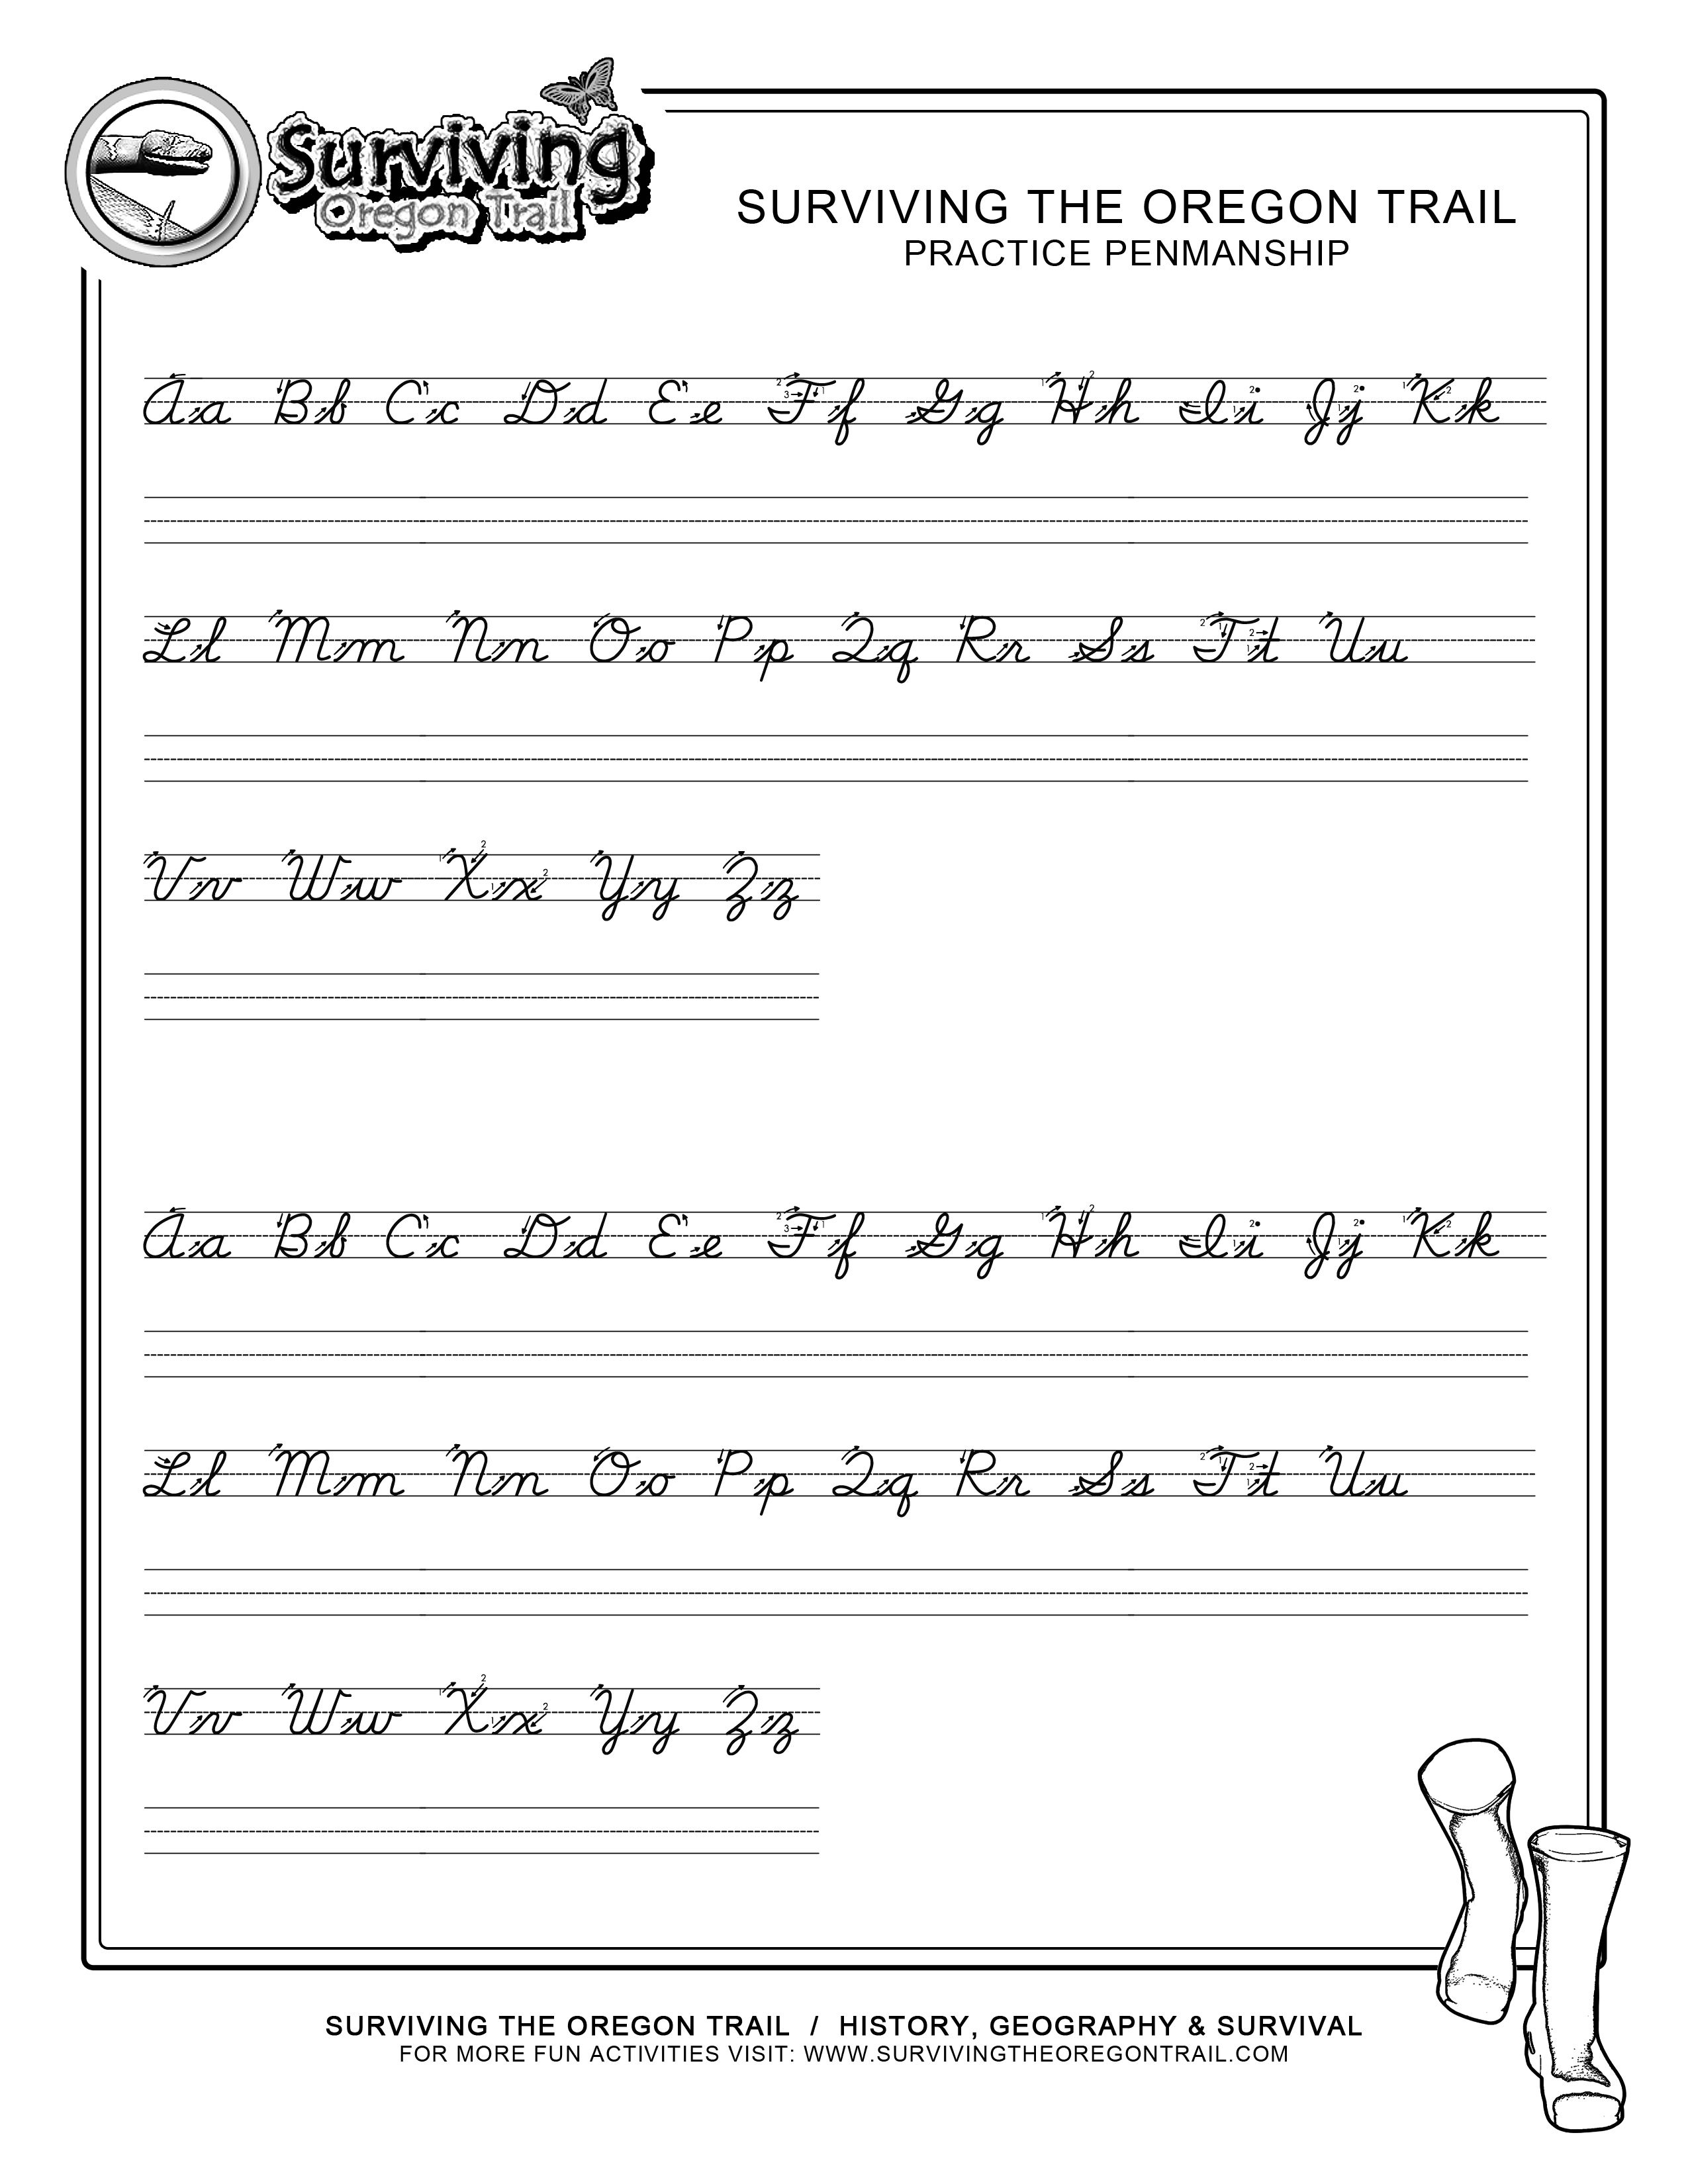 Practice Penmanship – Free Abc's Printable Cursive Writing Worksheet | Printable Cursive Worksheets Az